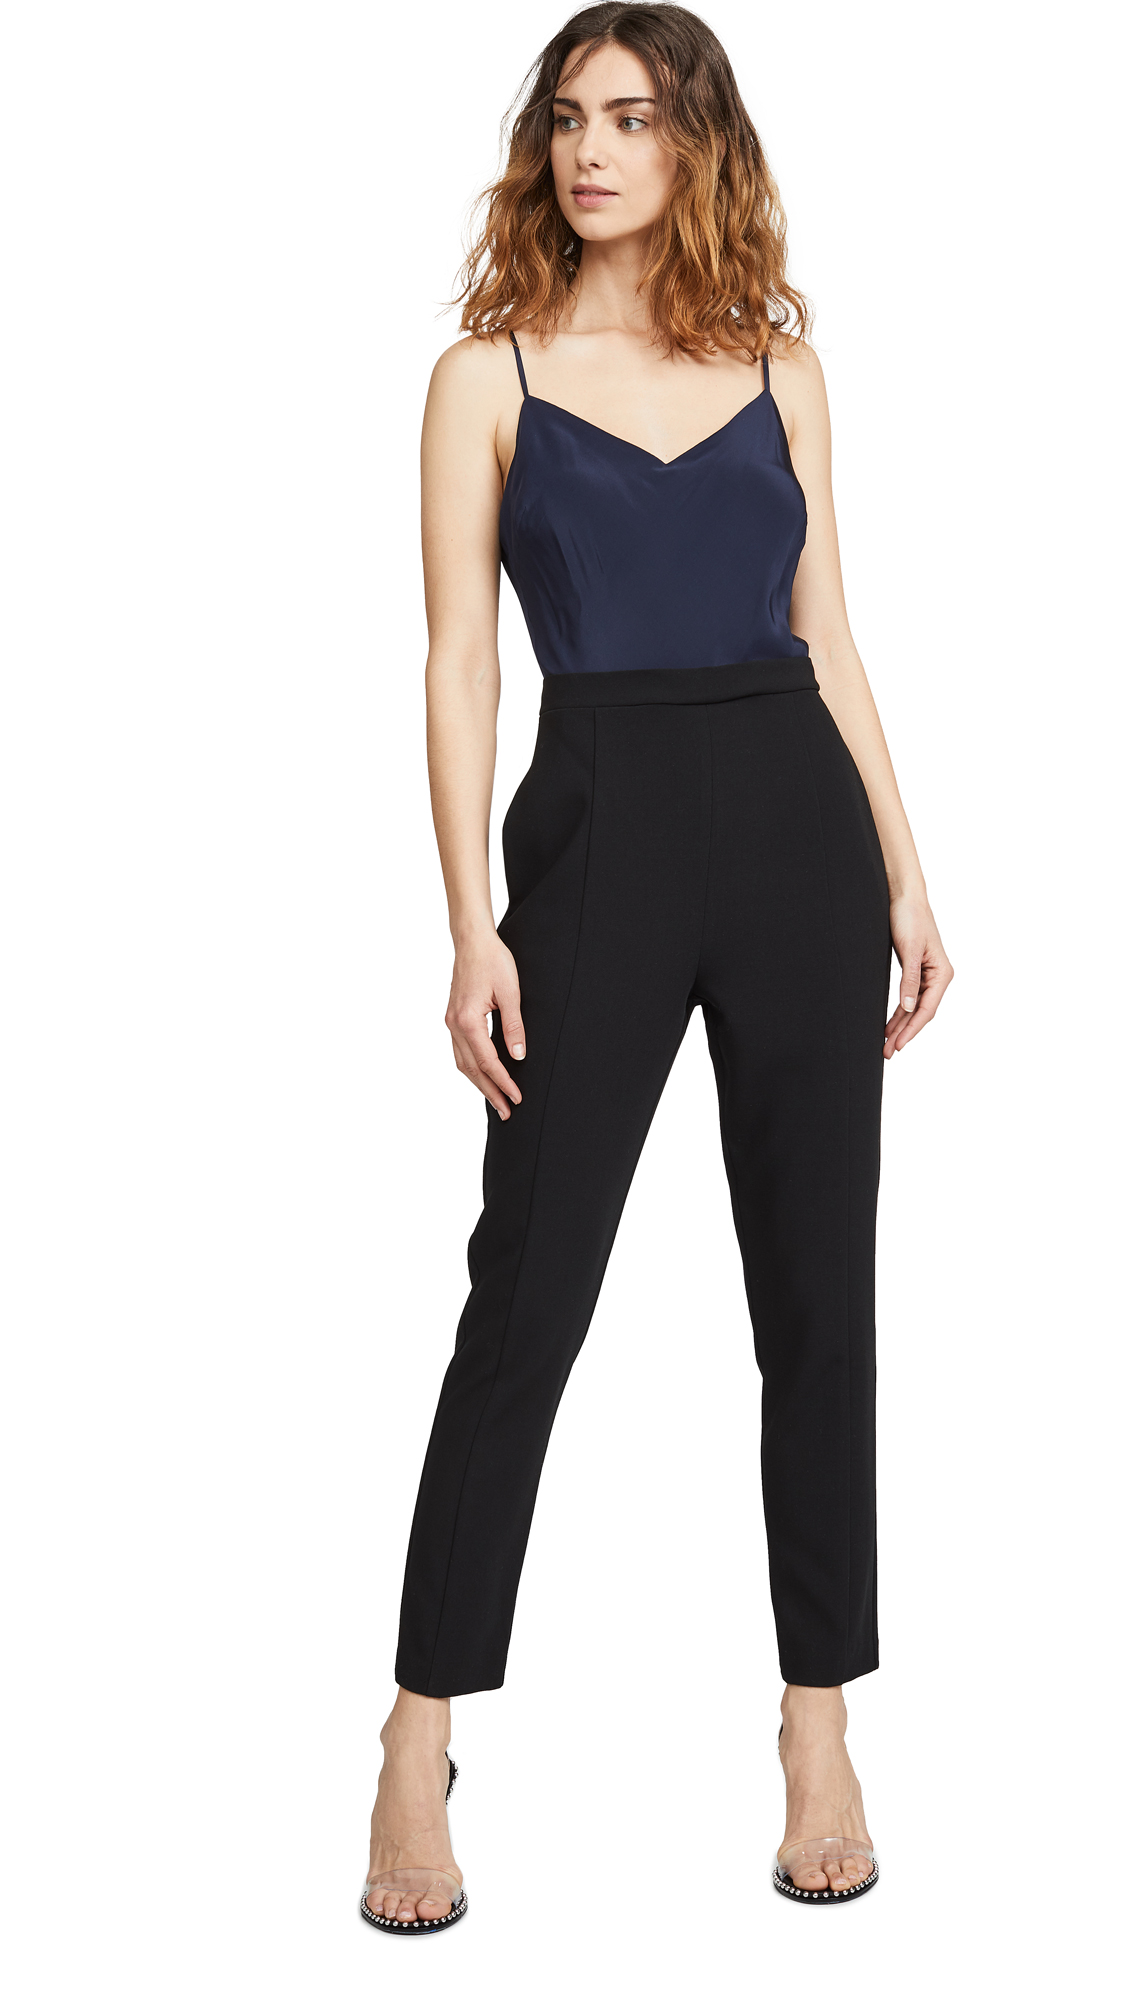 Black Halo Teagun Jumpsuit - Navy/Black